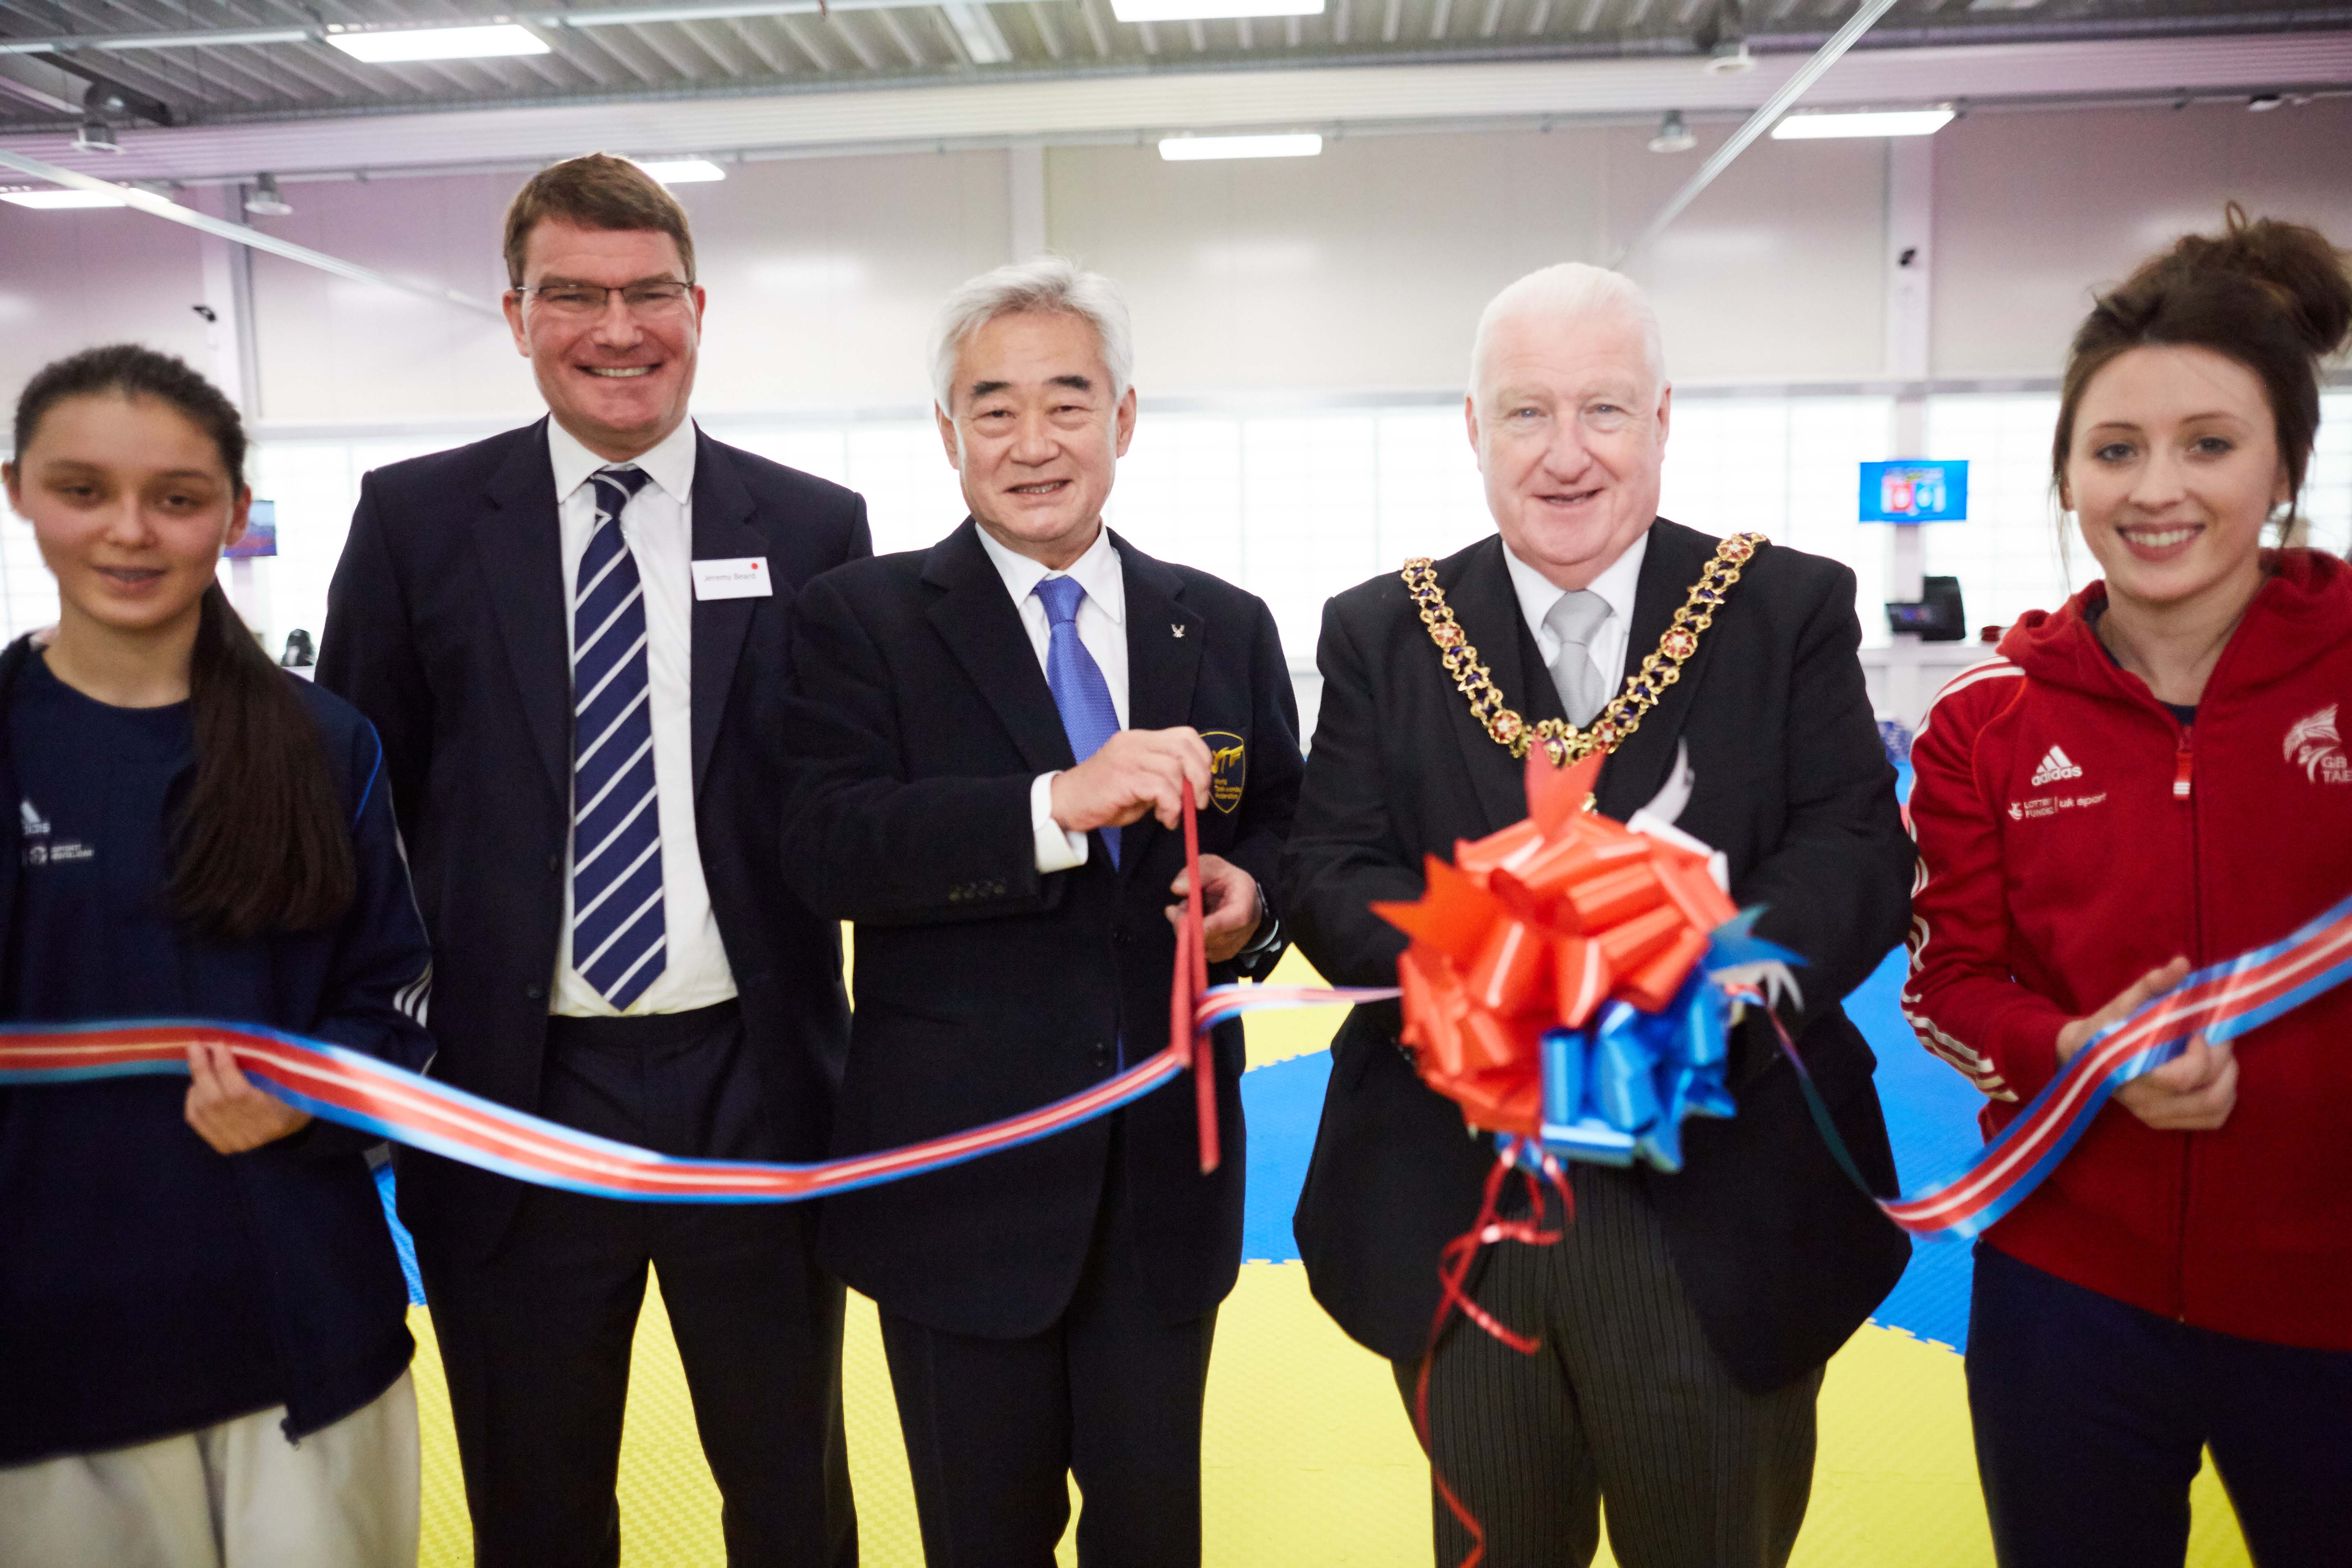 National Taekwondo Centre in Manchester official opening of the new Centre after a £3m transformation. Pictured Chungwon Choue, President of the World Taekwondo Federation opens the new centre